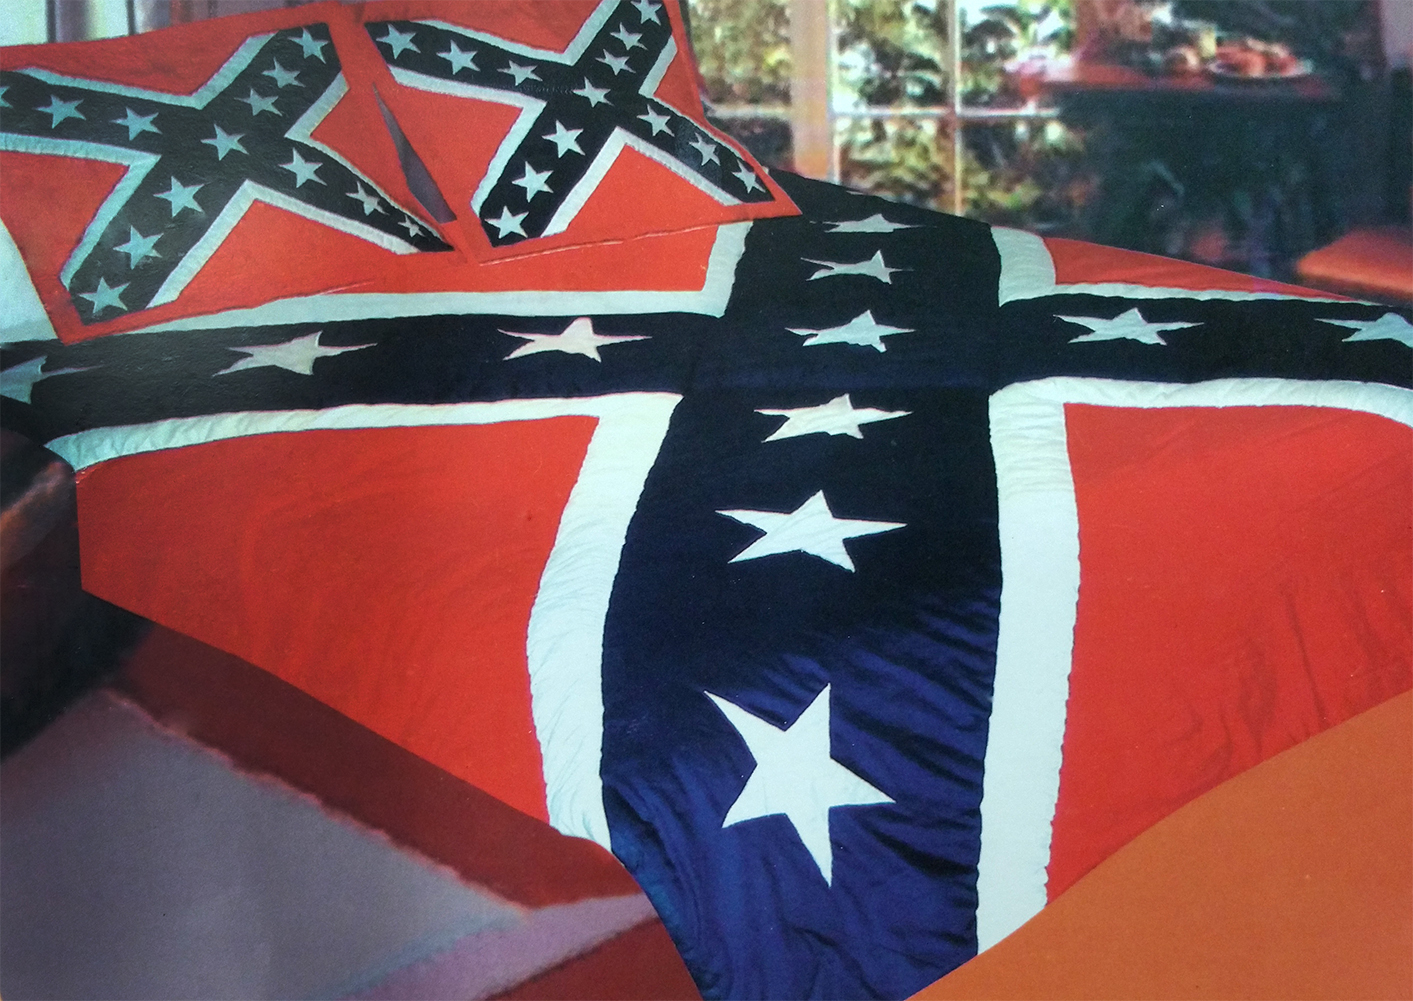 Rebel Flag Hats  Accessories Confederate Flag Items - Rebel flag truck decals   online purchasing